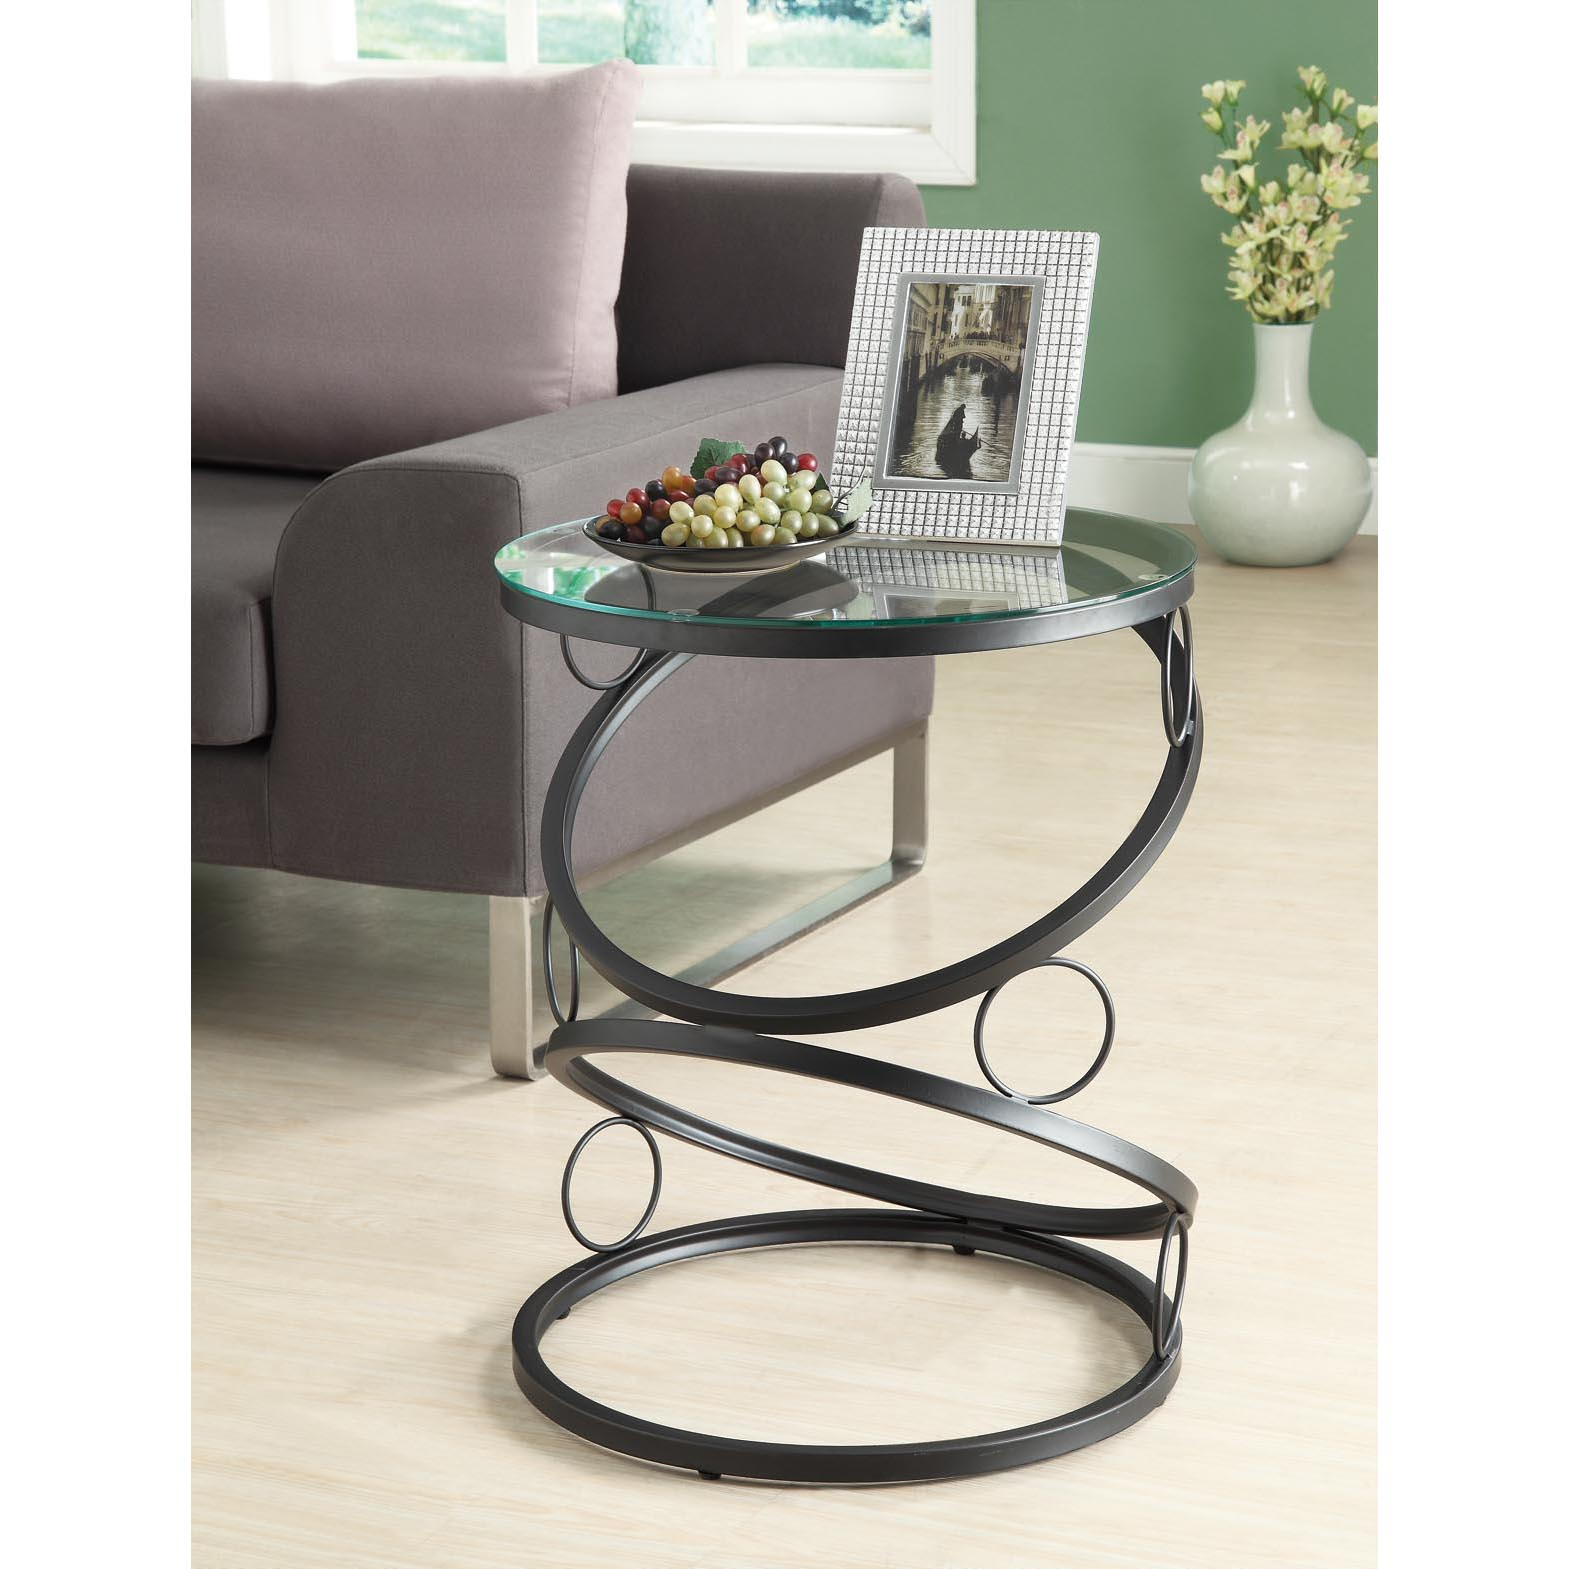 Matte Black Metal Accent Table with Tempered Glass